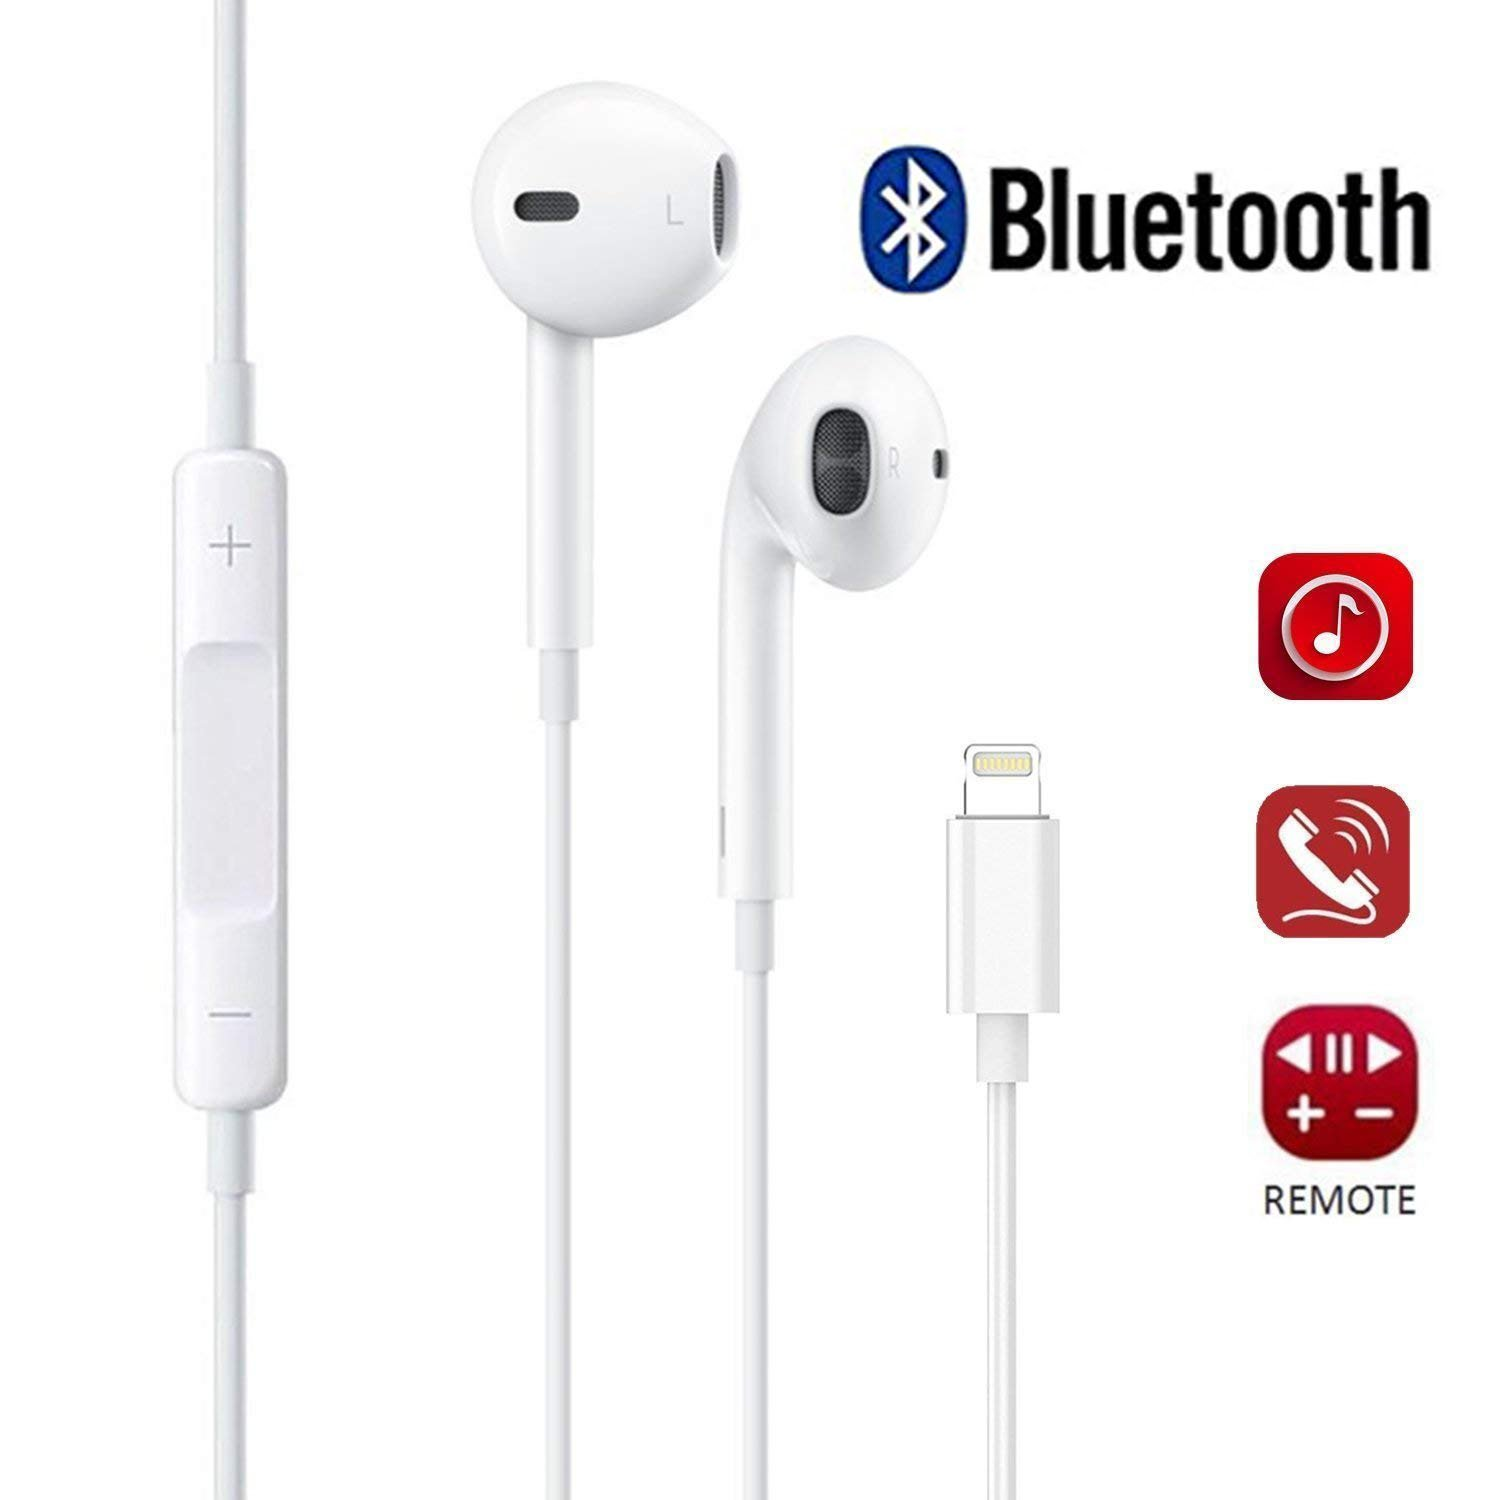 Lightning Earphones With Microphone Earbuds Stereo Headphones and Noise Isolating headset Made for iPhone7/7 Plus/iPhone8/8 Plus/iPhone X/iPad/iPod Support all iOS system[Bluetooth Connectivity]White